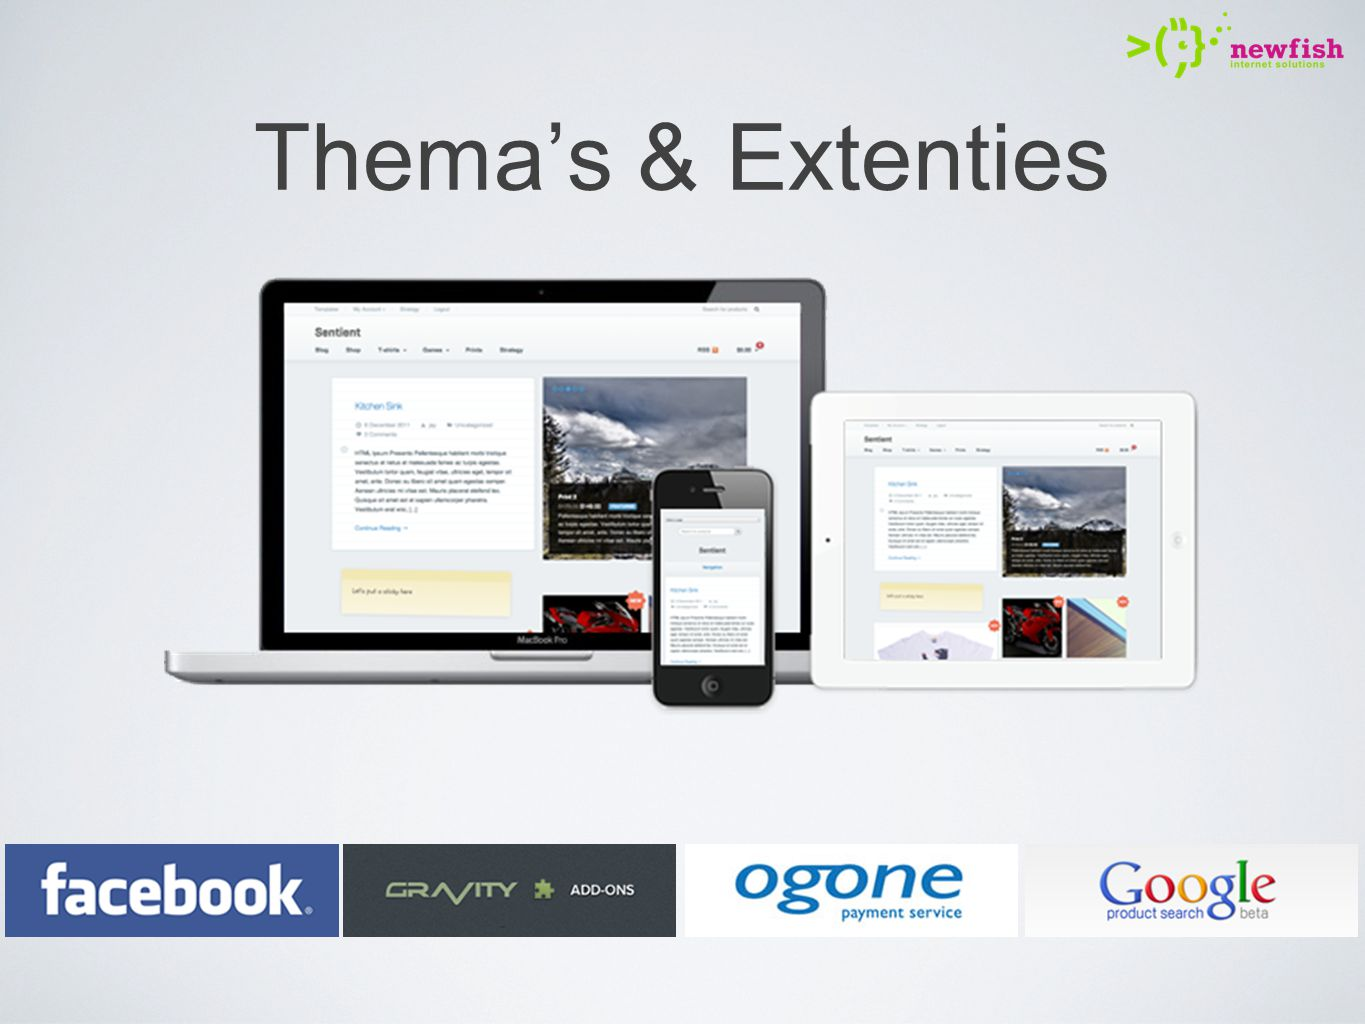 Thema's & Extenties key features: Product feed;